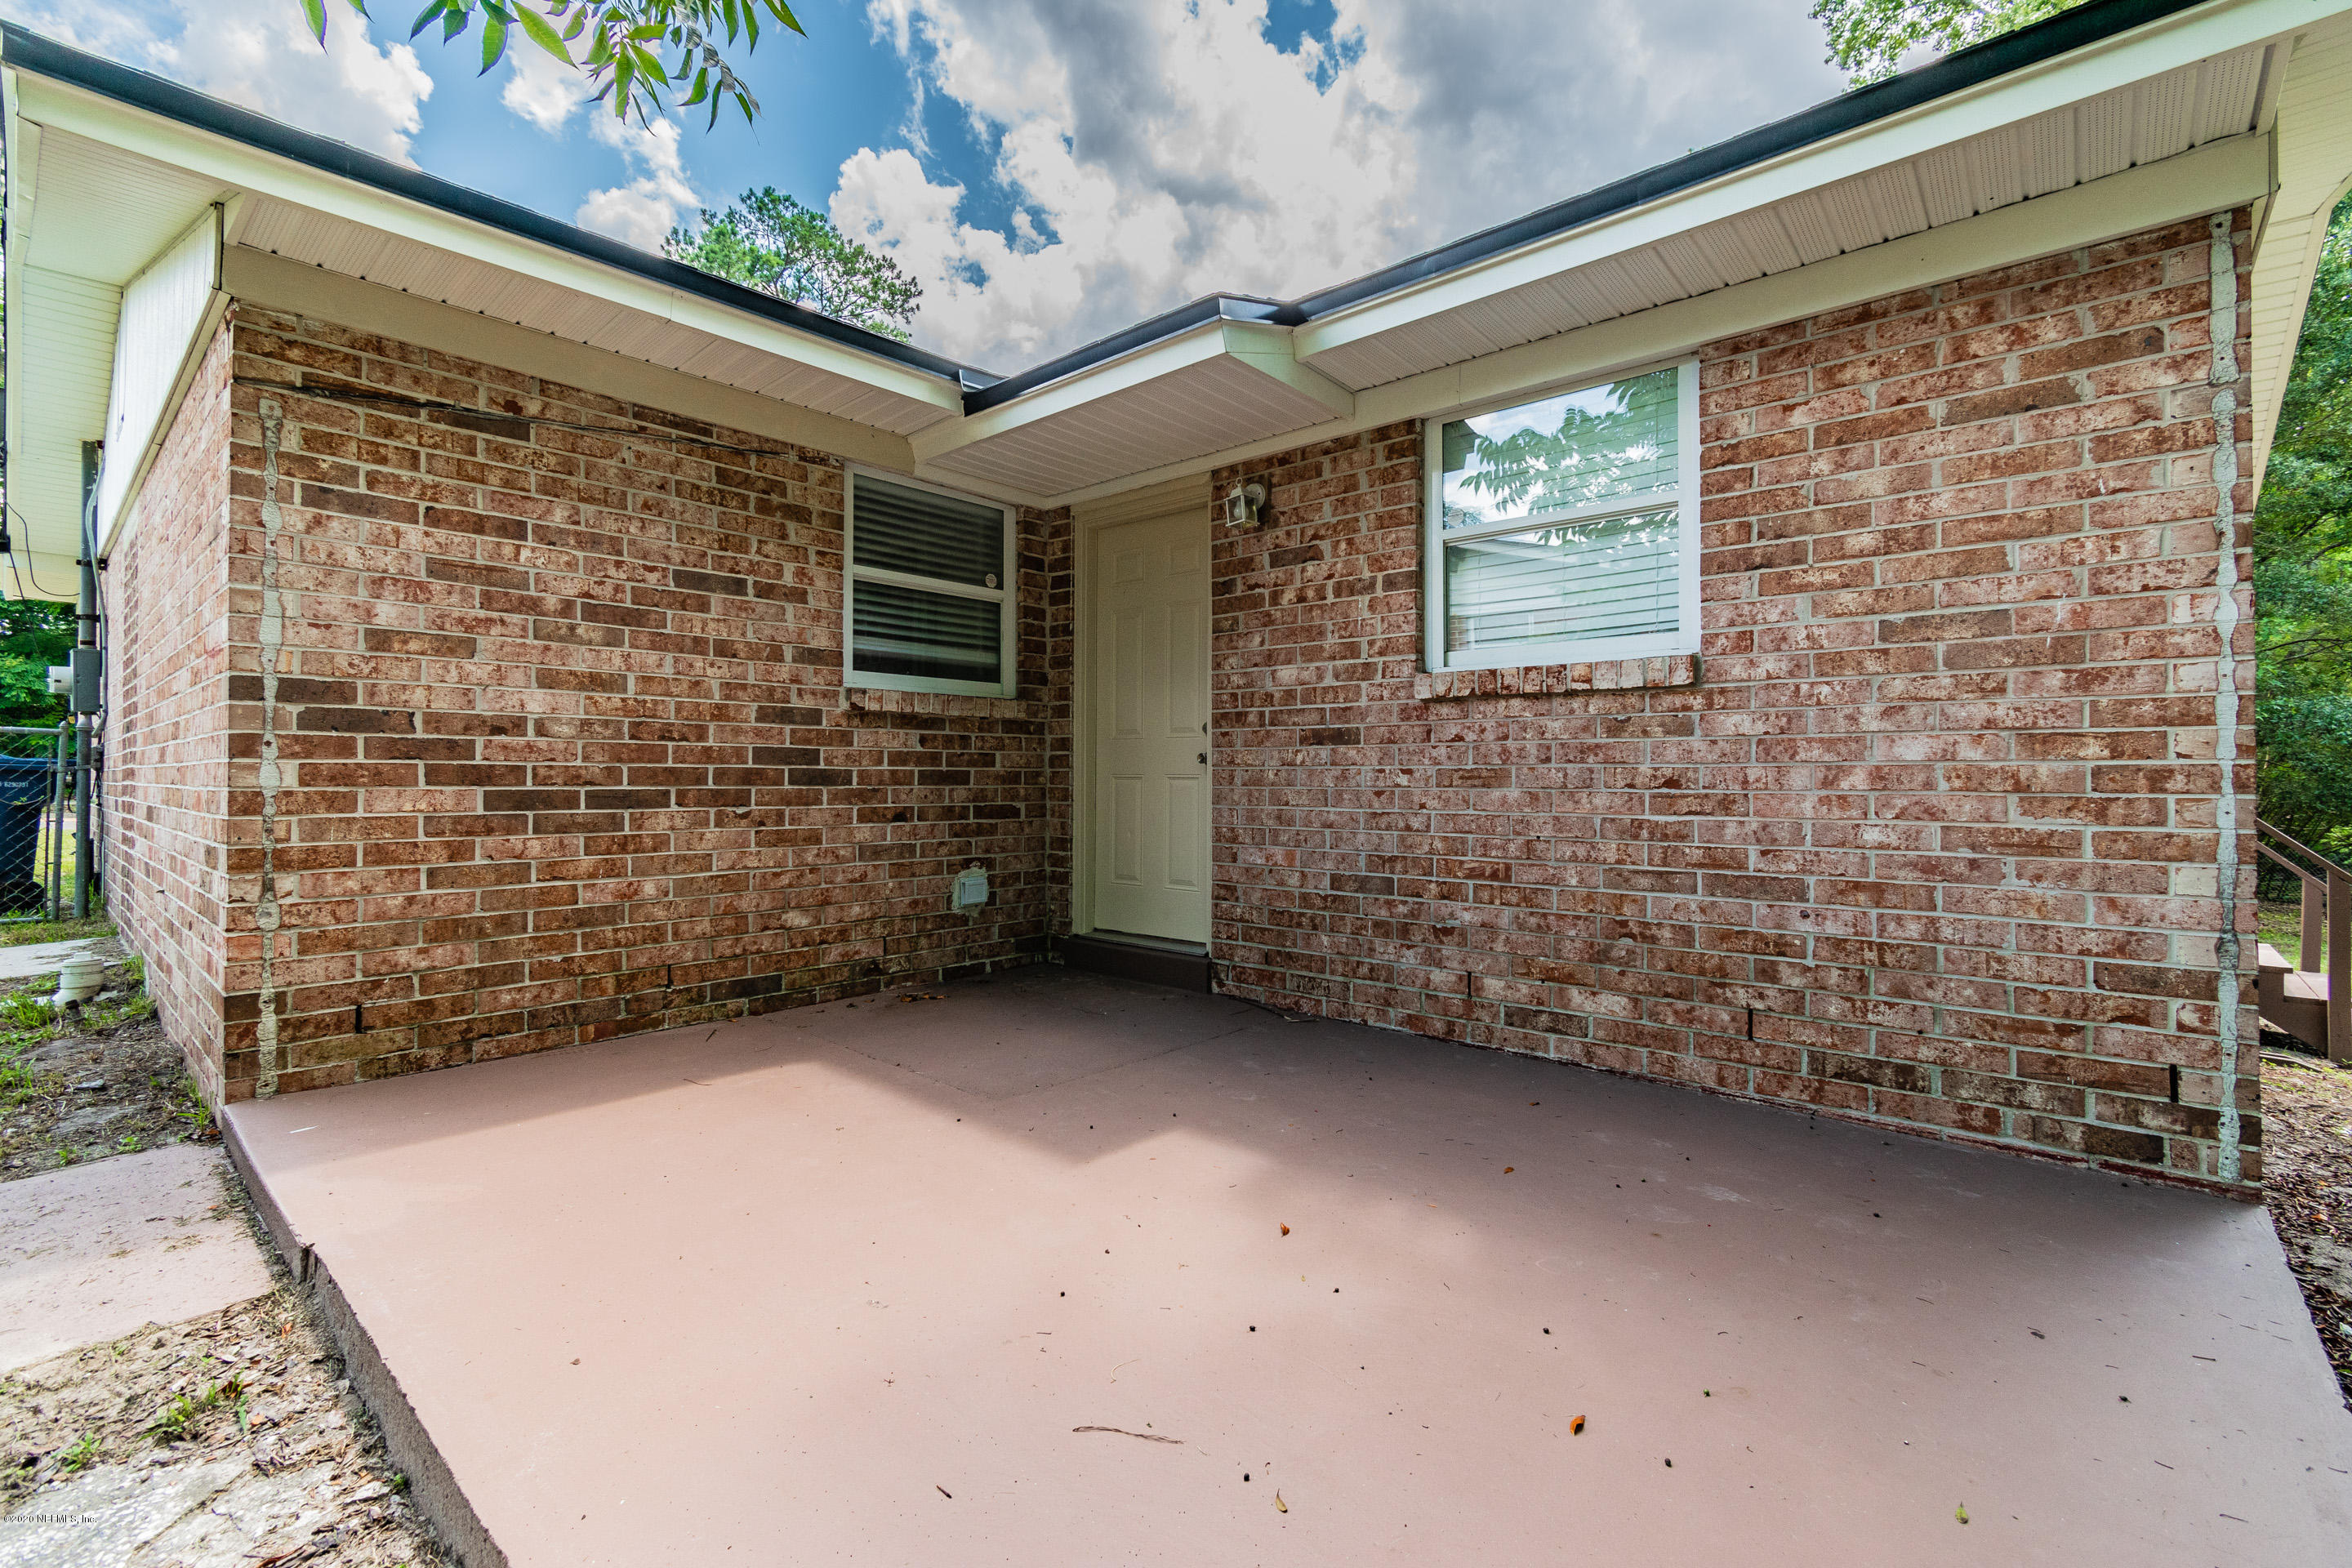 2735 LEONID, JACKSONVILLE, FLORIDA 32218, 4 Bedrooms Bedrooms, ,2 BathroomsBathrooms,Residential,For sale,LEONID,1059342